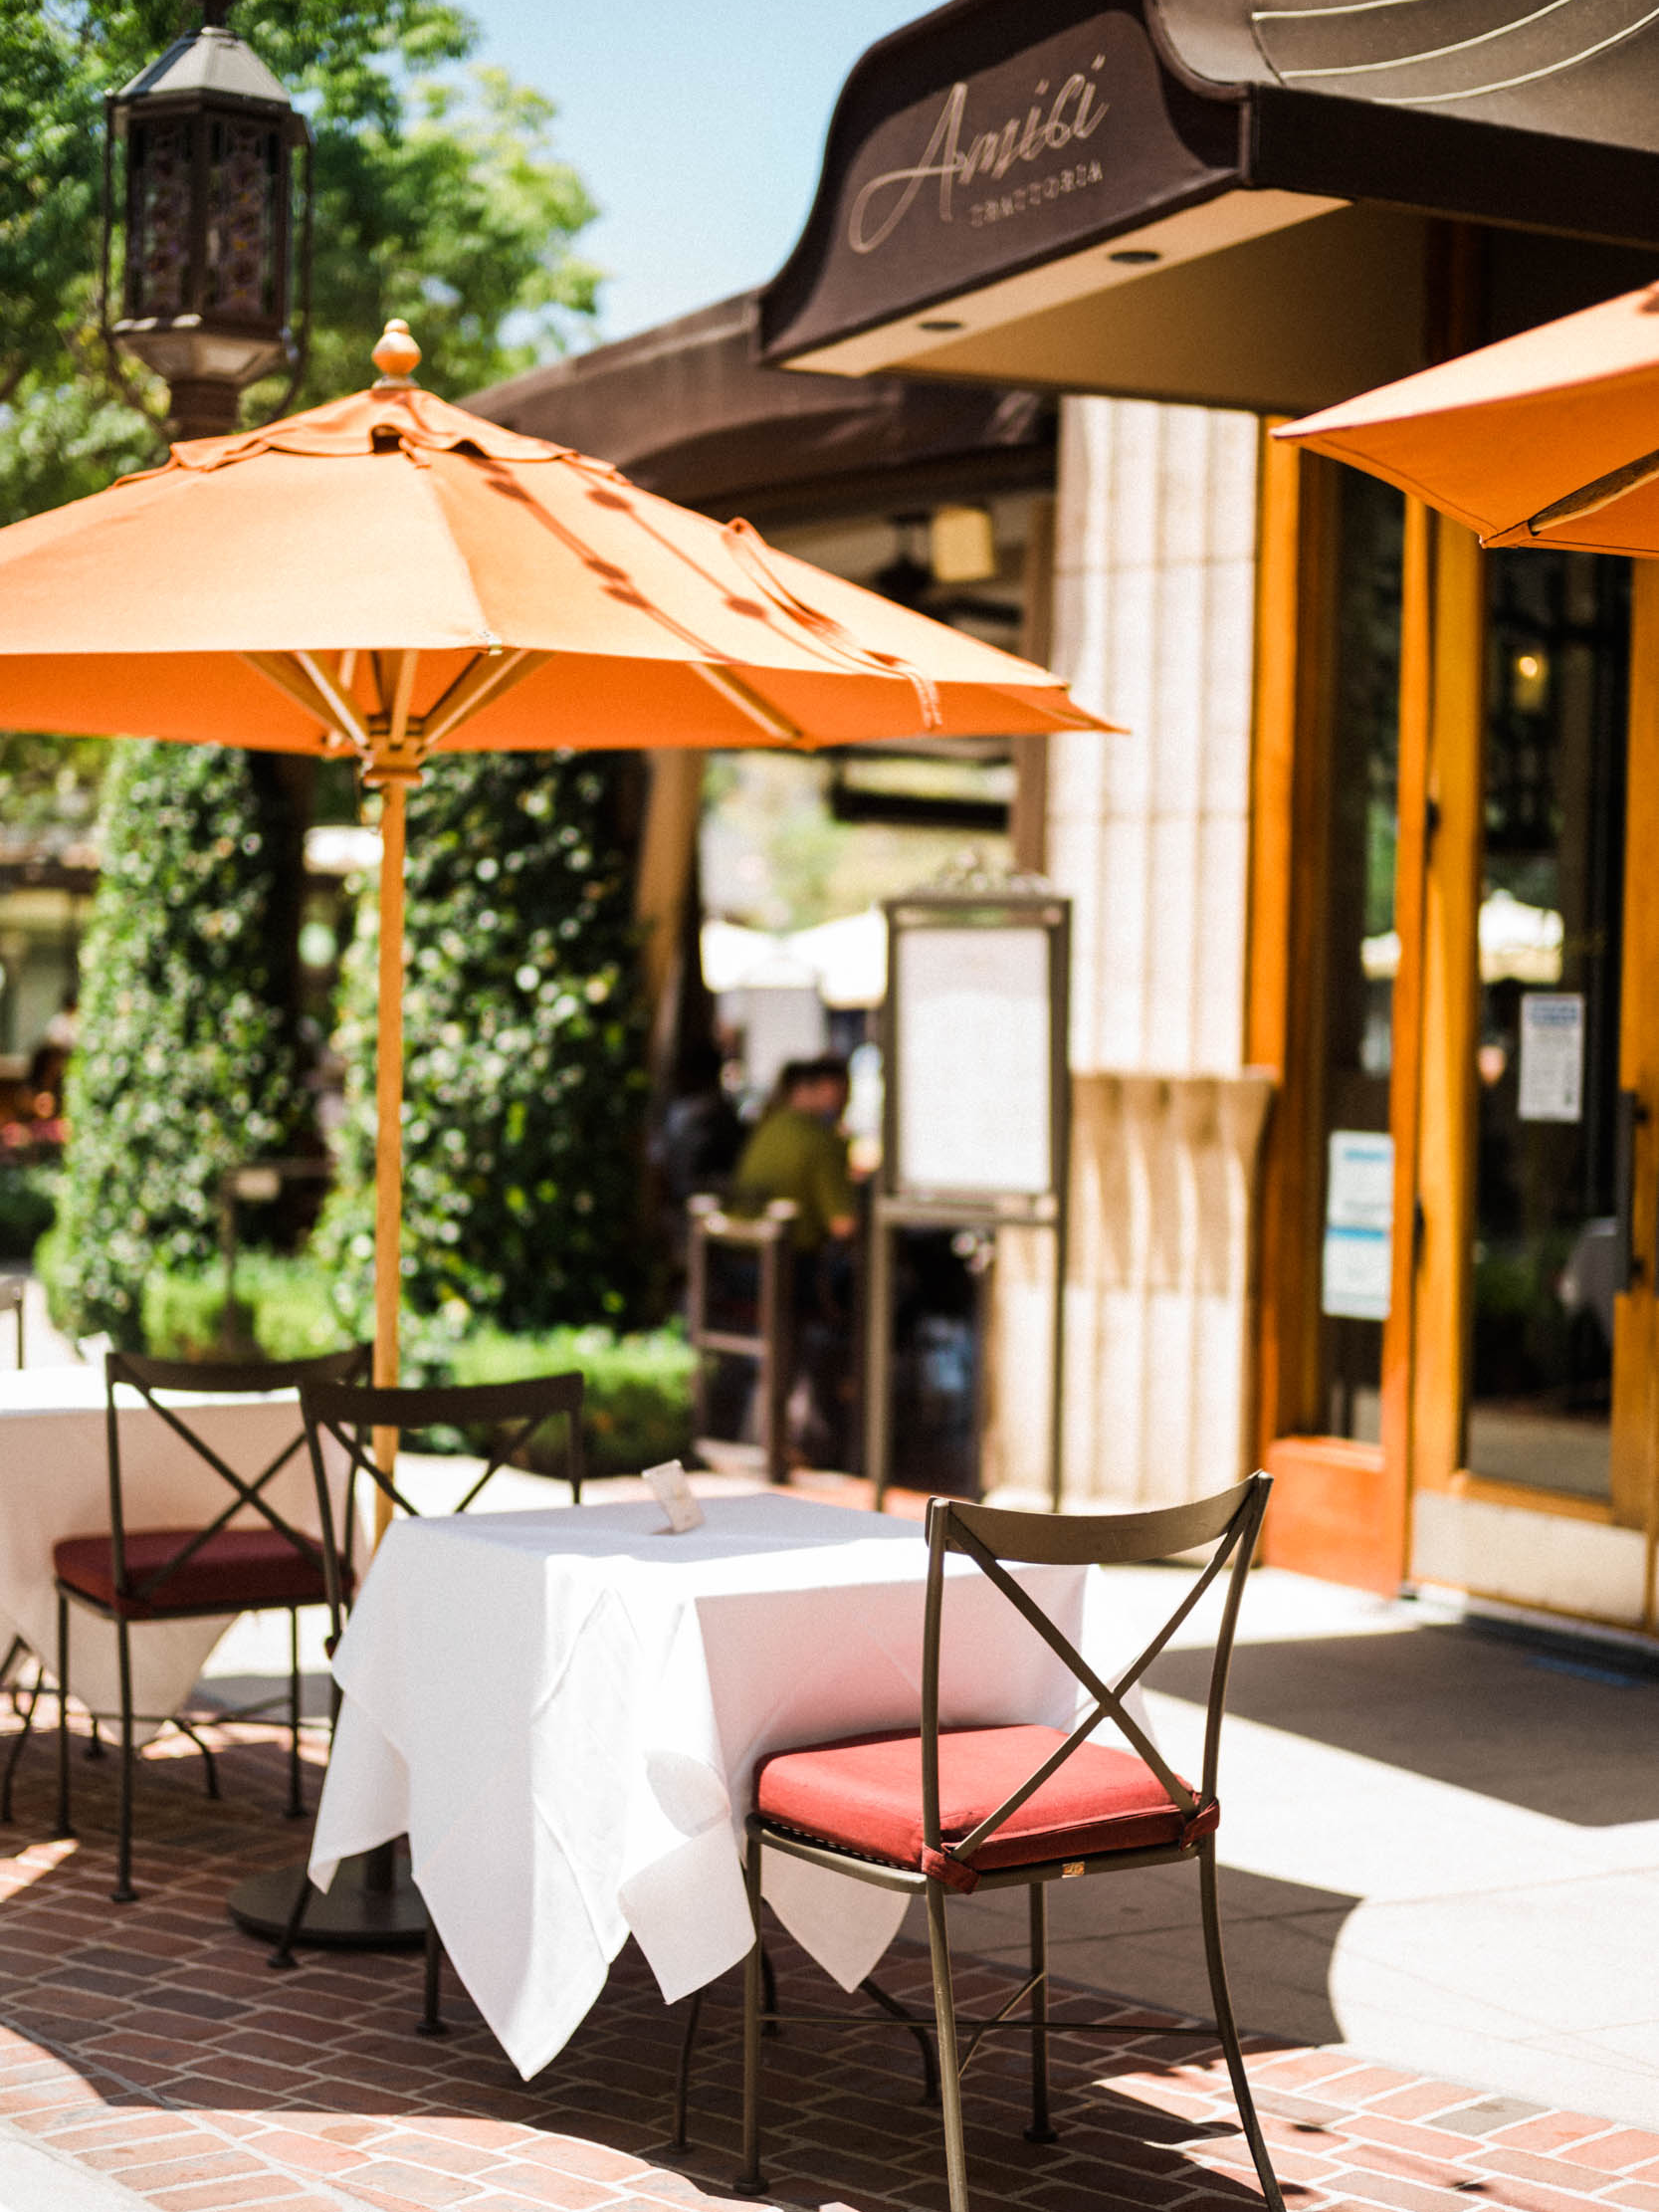 Amici Outdoor Dining at The Americana at Brand